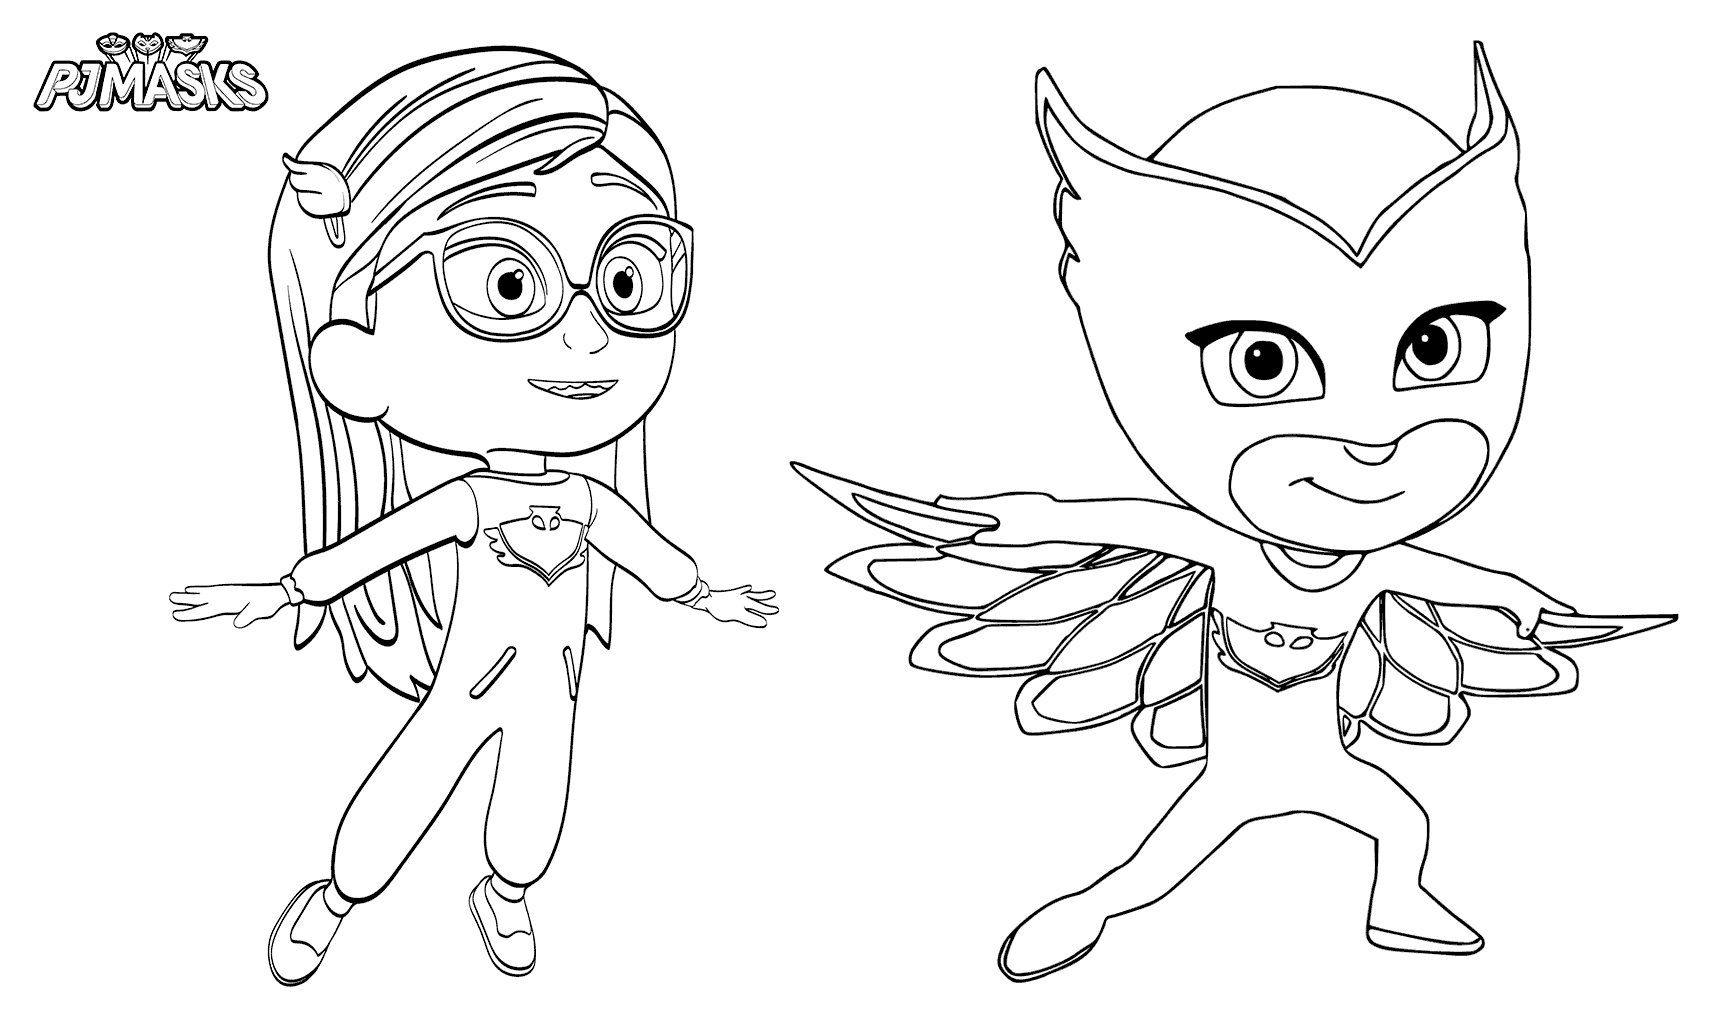 Vibrant image with regard to pj masks coloring pages printable